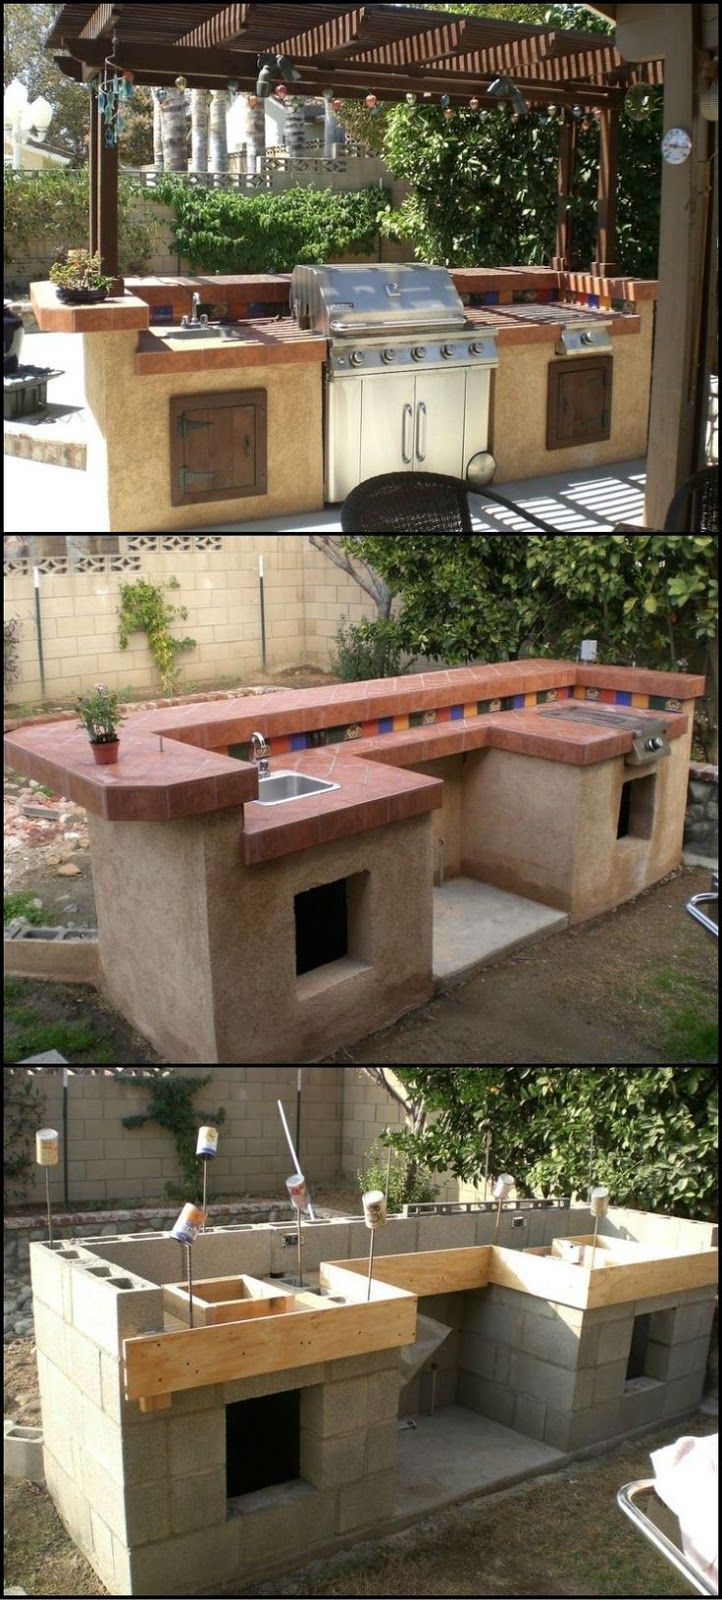 Outdoor Küche Pinterest To Build An Outdoor Kitchen Thinking Of Ways To Enhance Your